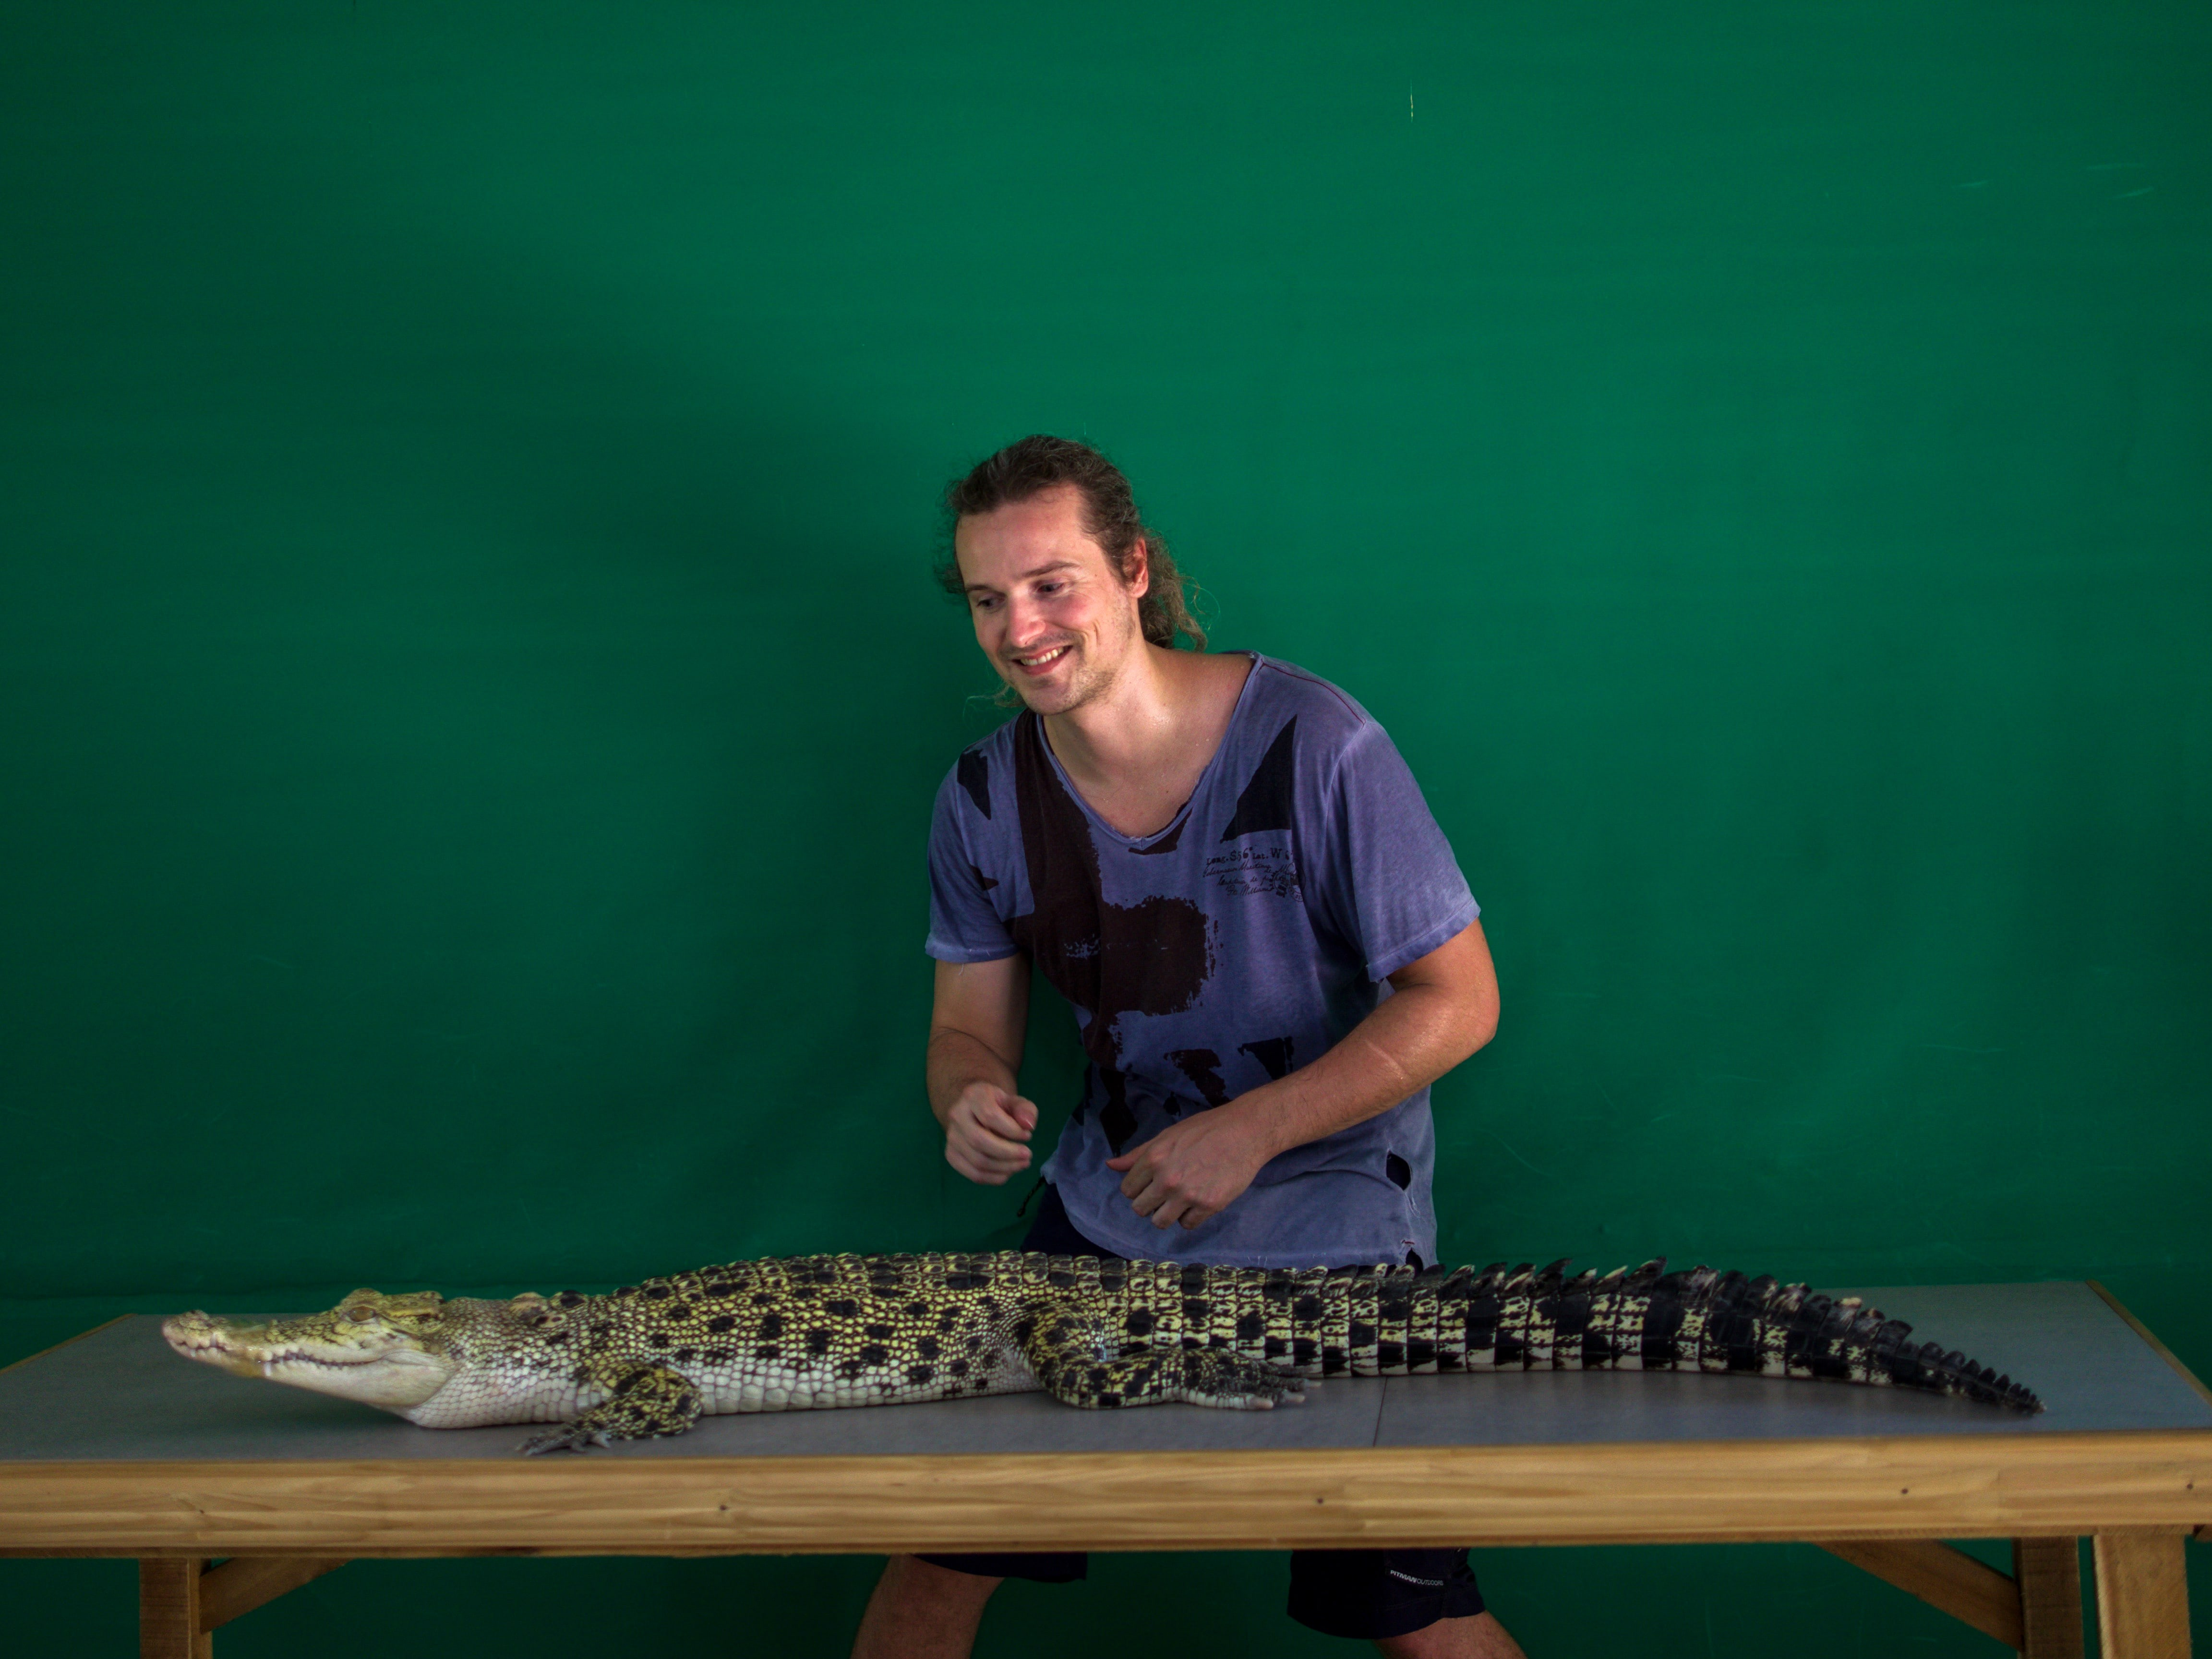 lenny through paradise grabs and poses for photo with little crocodile at Palawan Wildlife Rescue and Conservation Centre